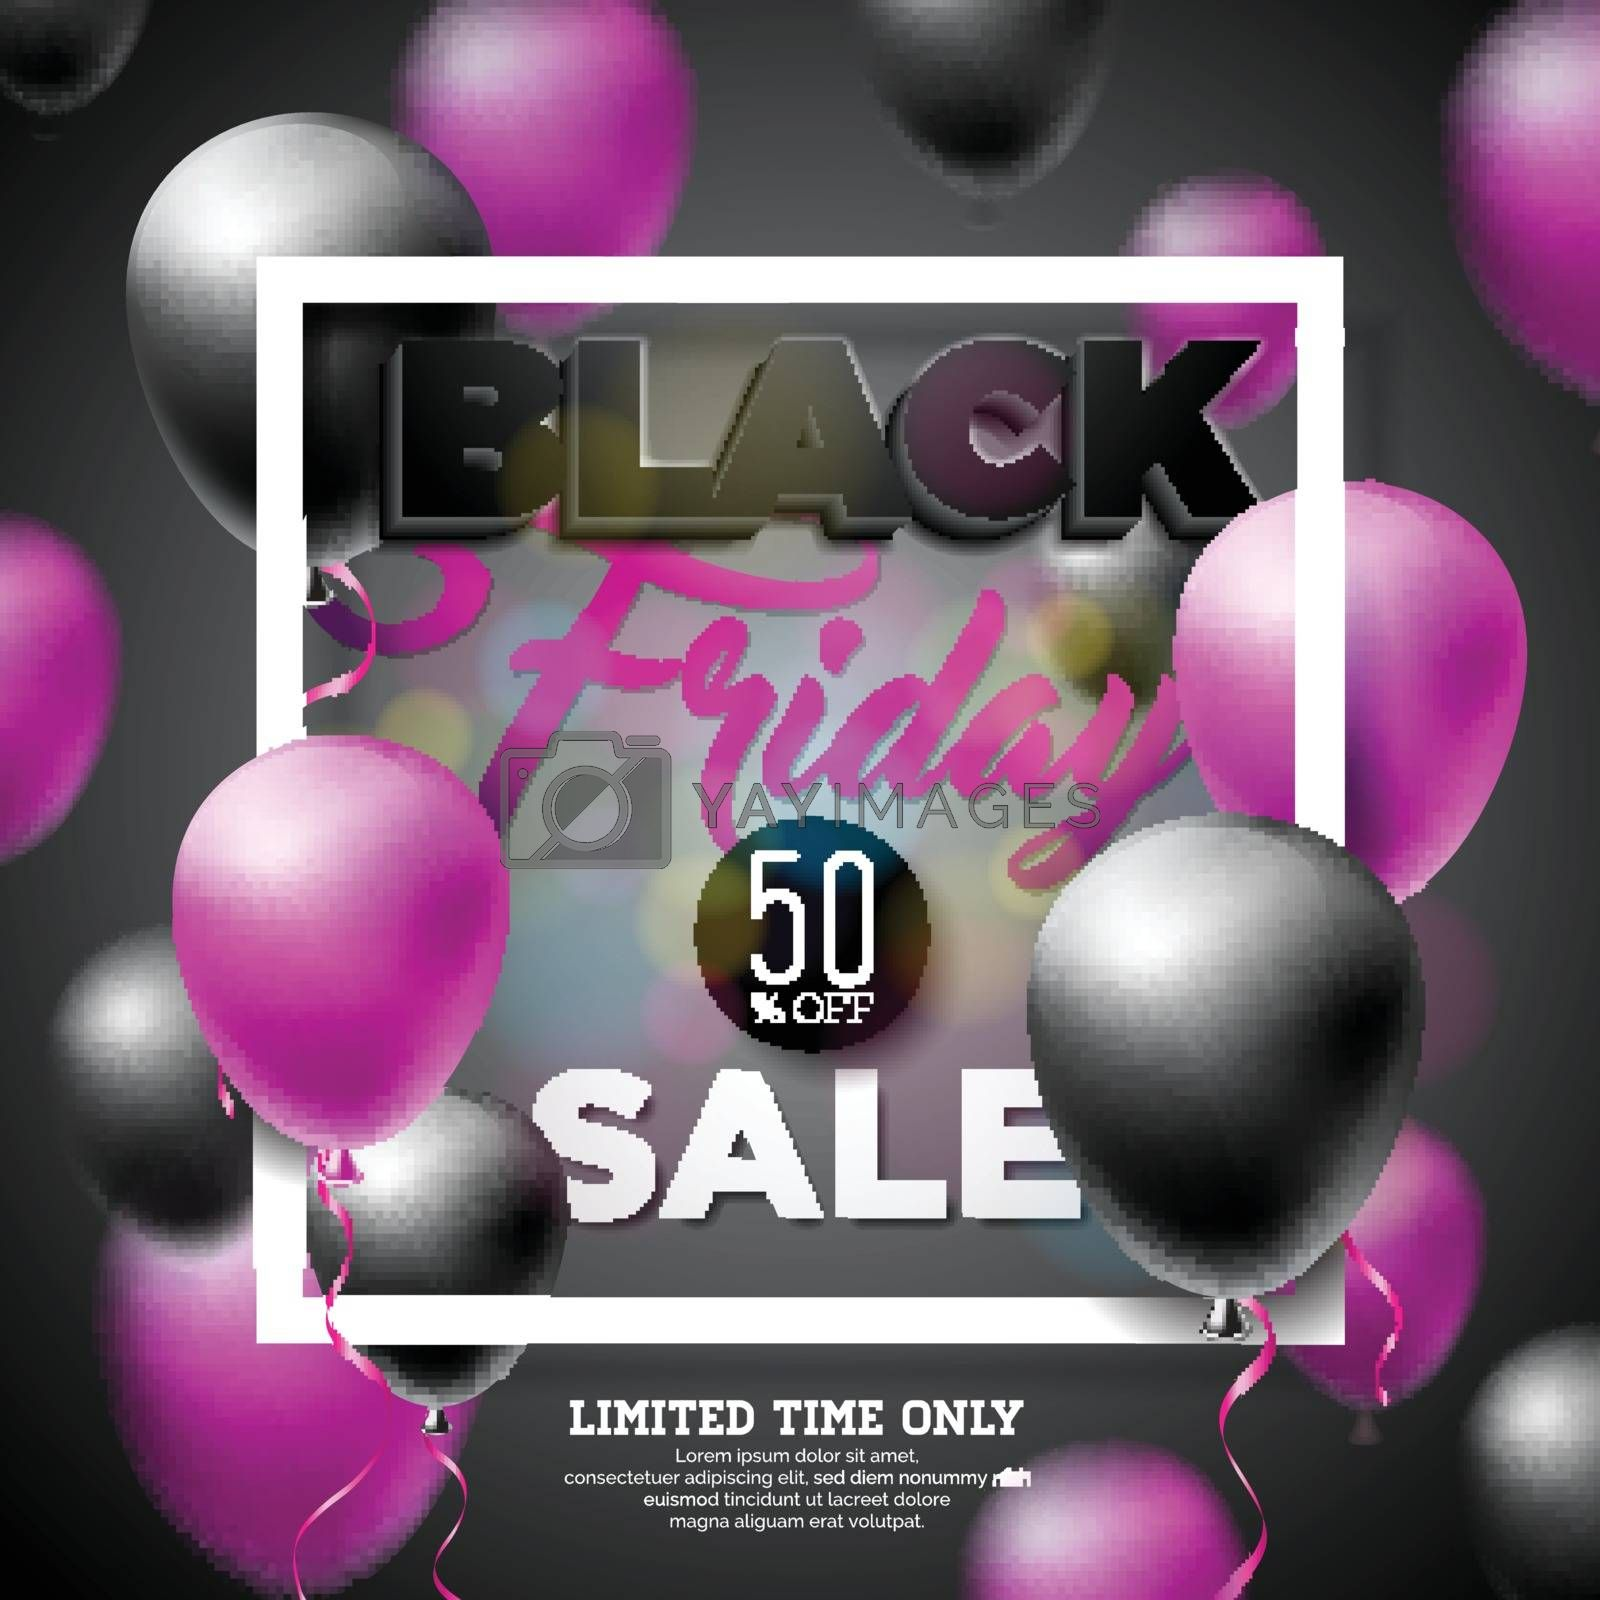 Black Friday Sale Vector Illustration with Shiny Balloons on Dark Background. Promotion Design Template for Banner or Poster